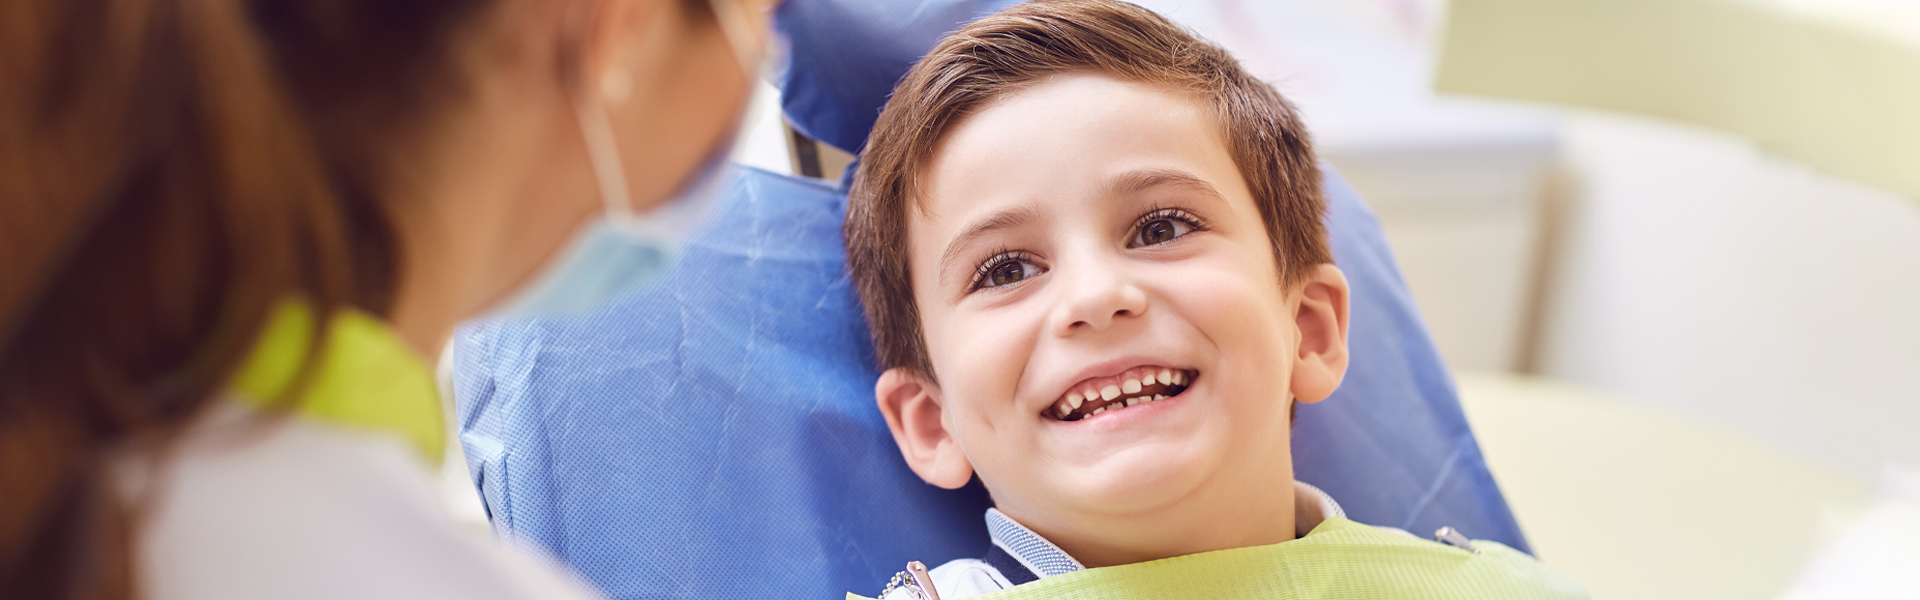 Here's Why Your Kid Needs Pediatric Dentistry